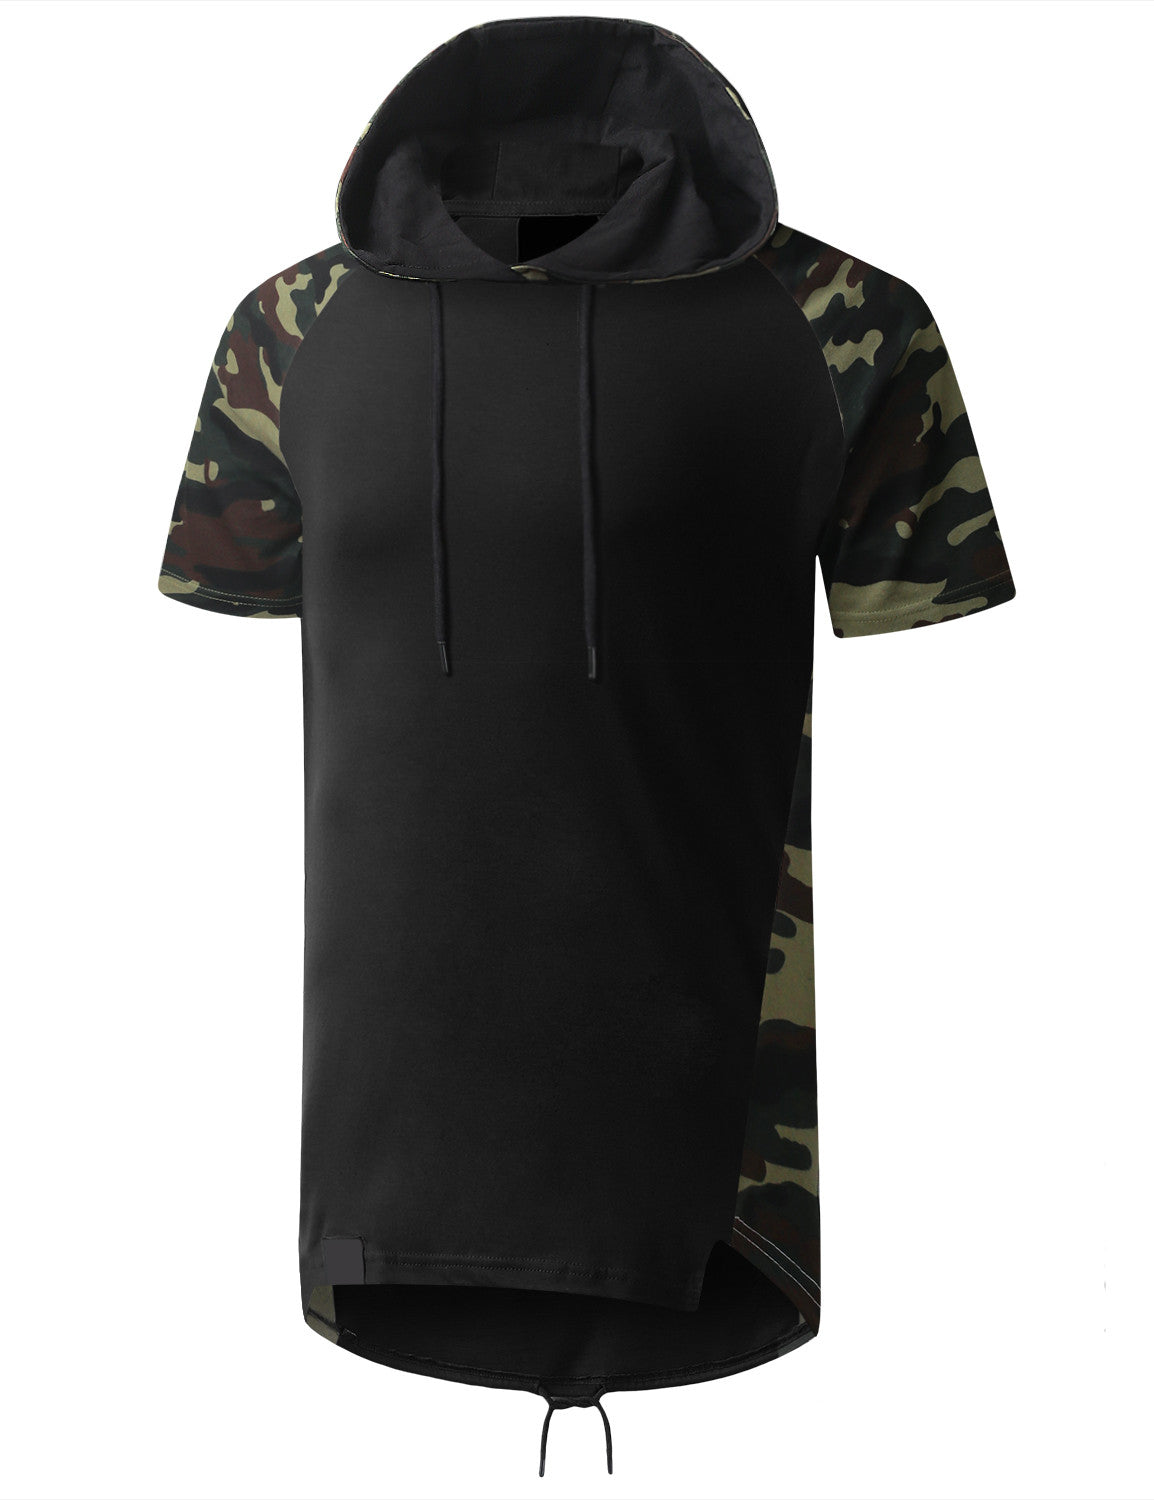 BLACK Camo Printed Short Sleeve Hoodie - URBANCREWS